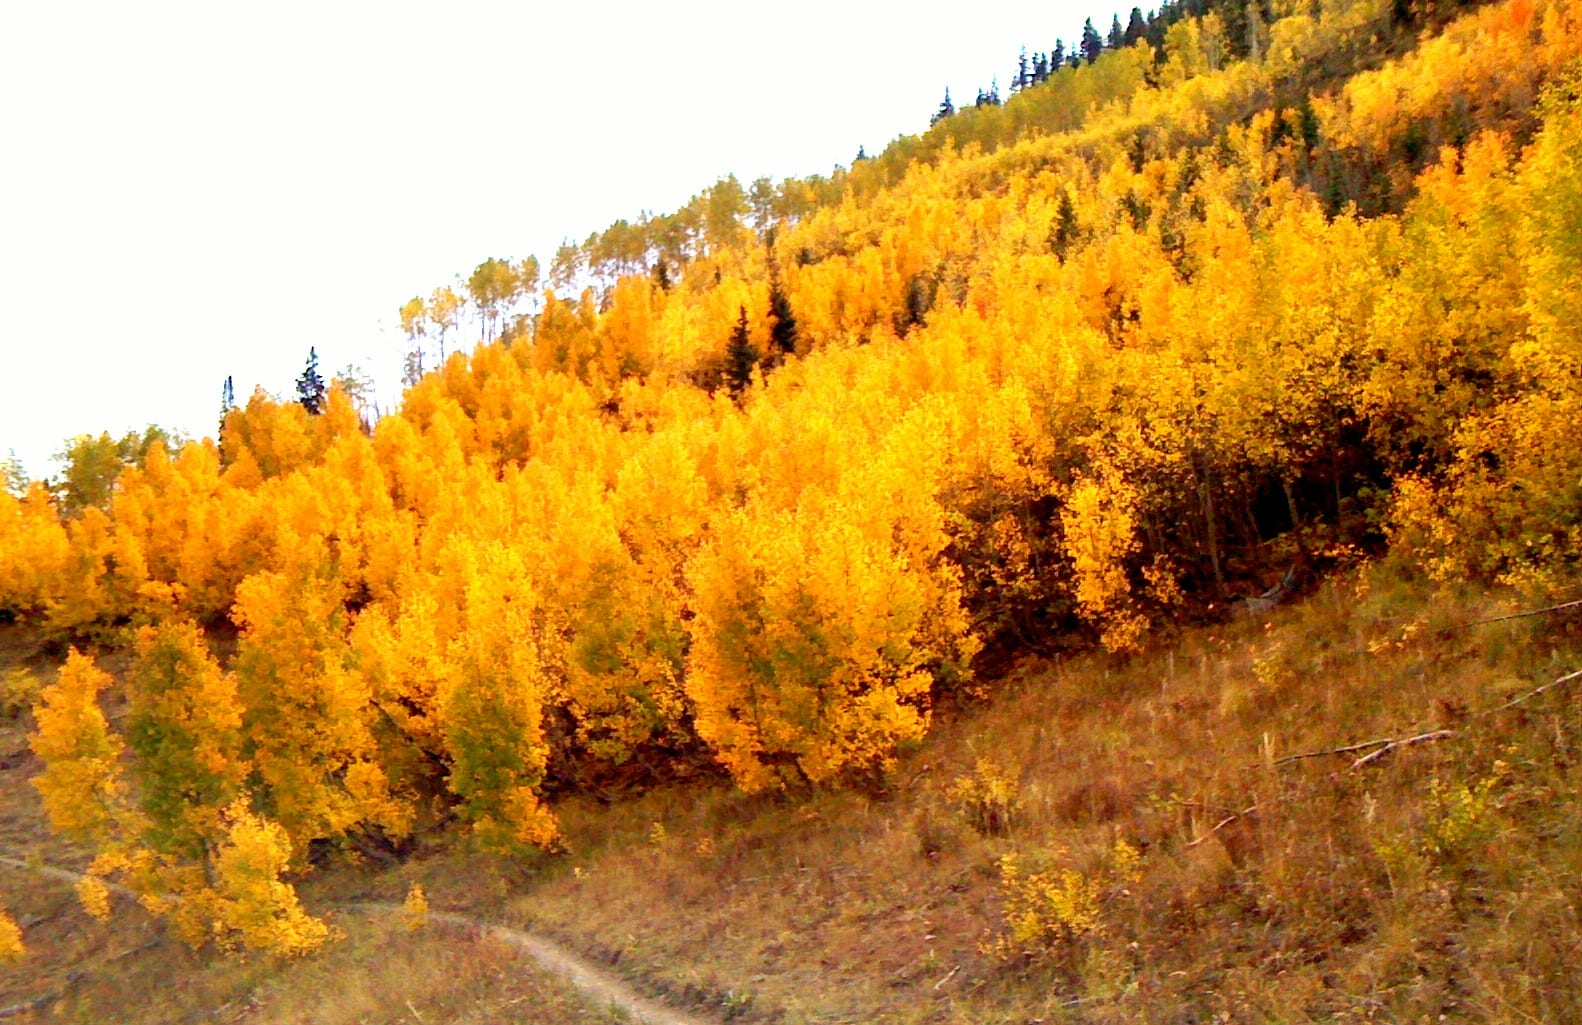 Fall Aspen Leaves in Crested Butte, Colorado